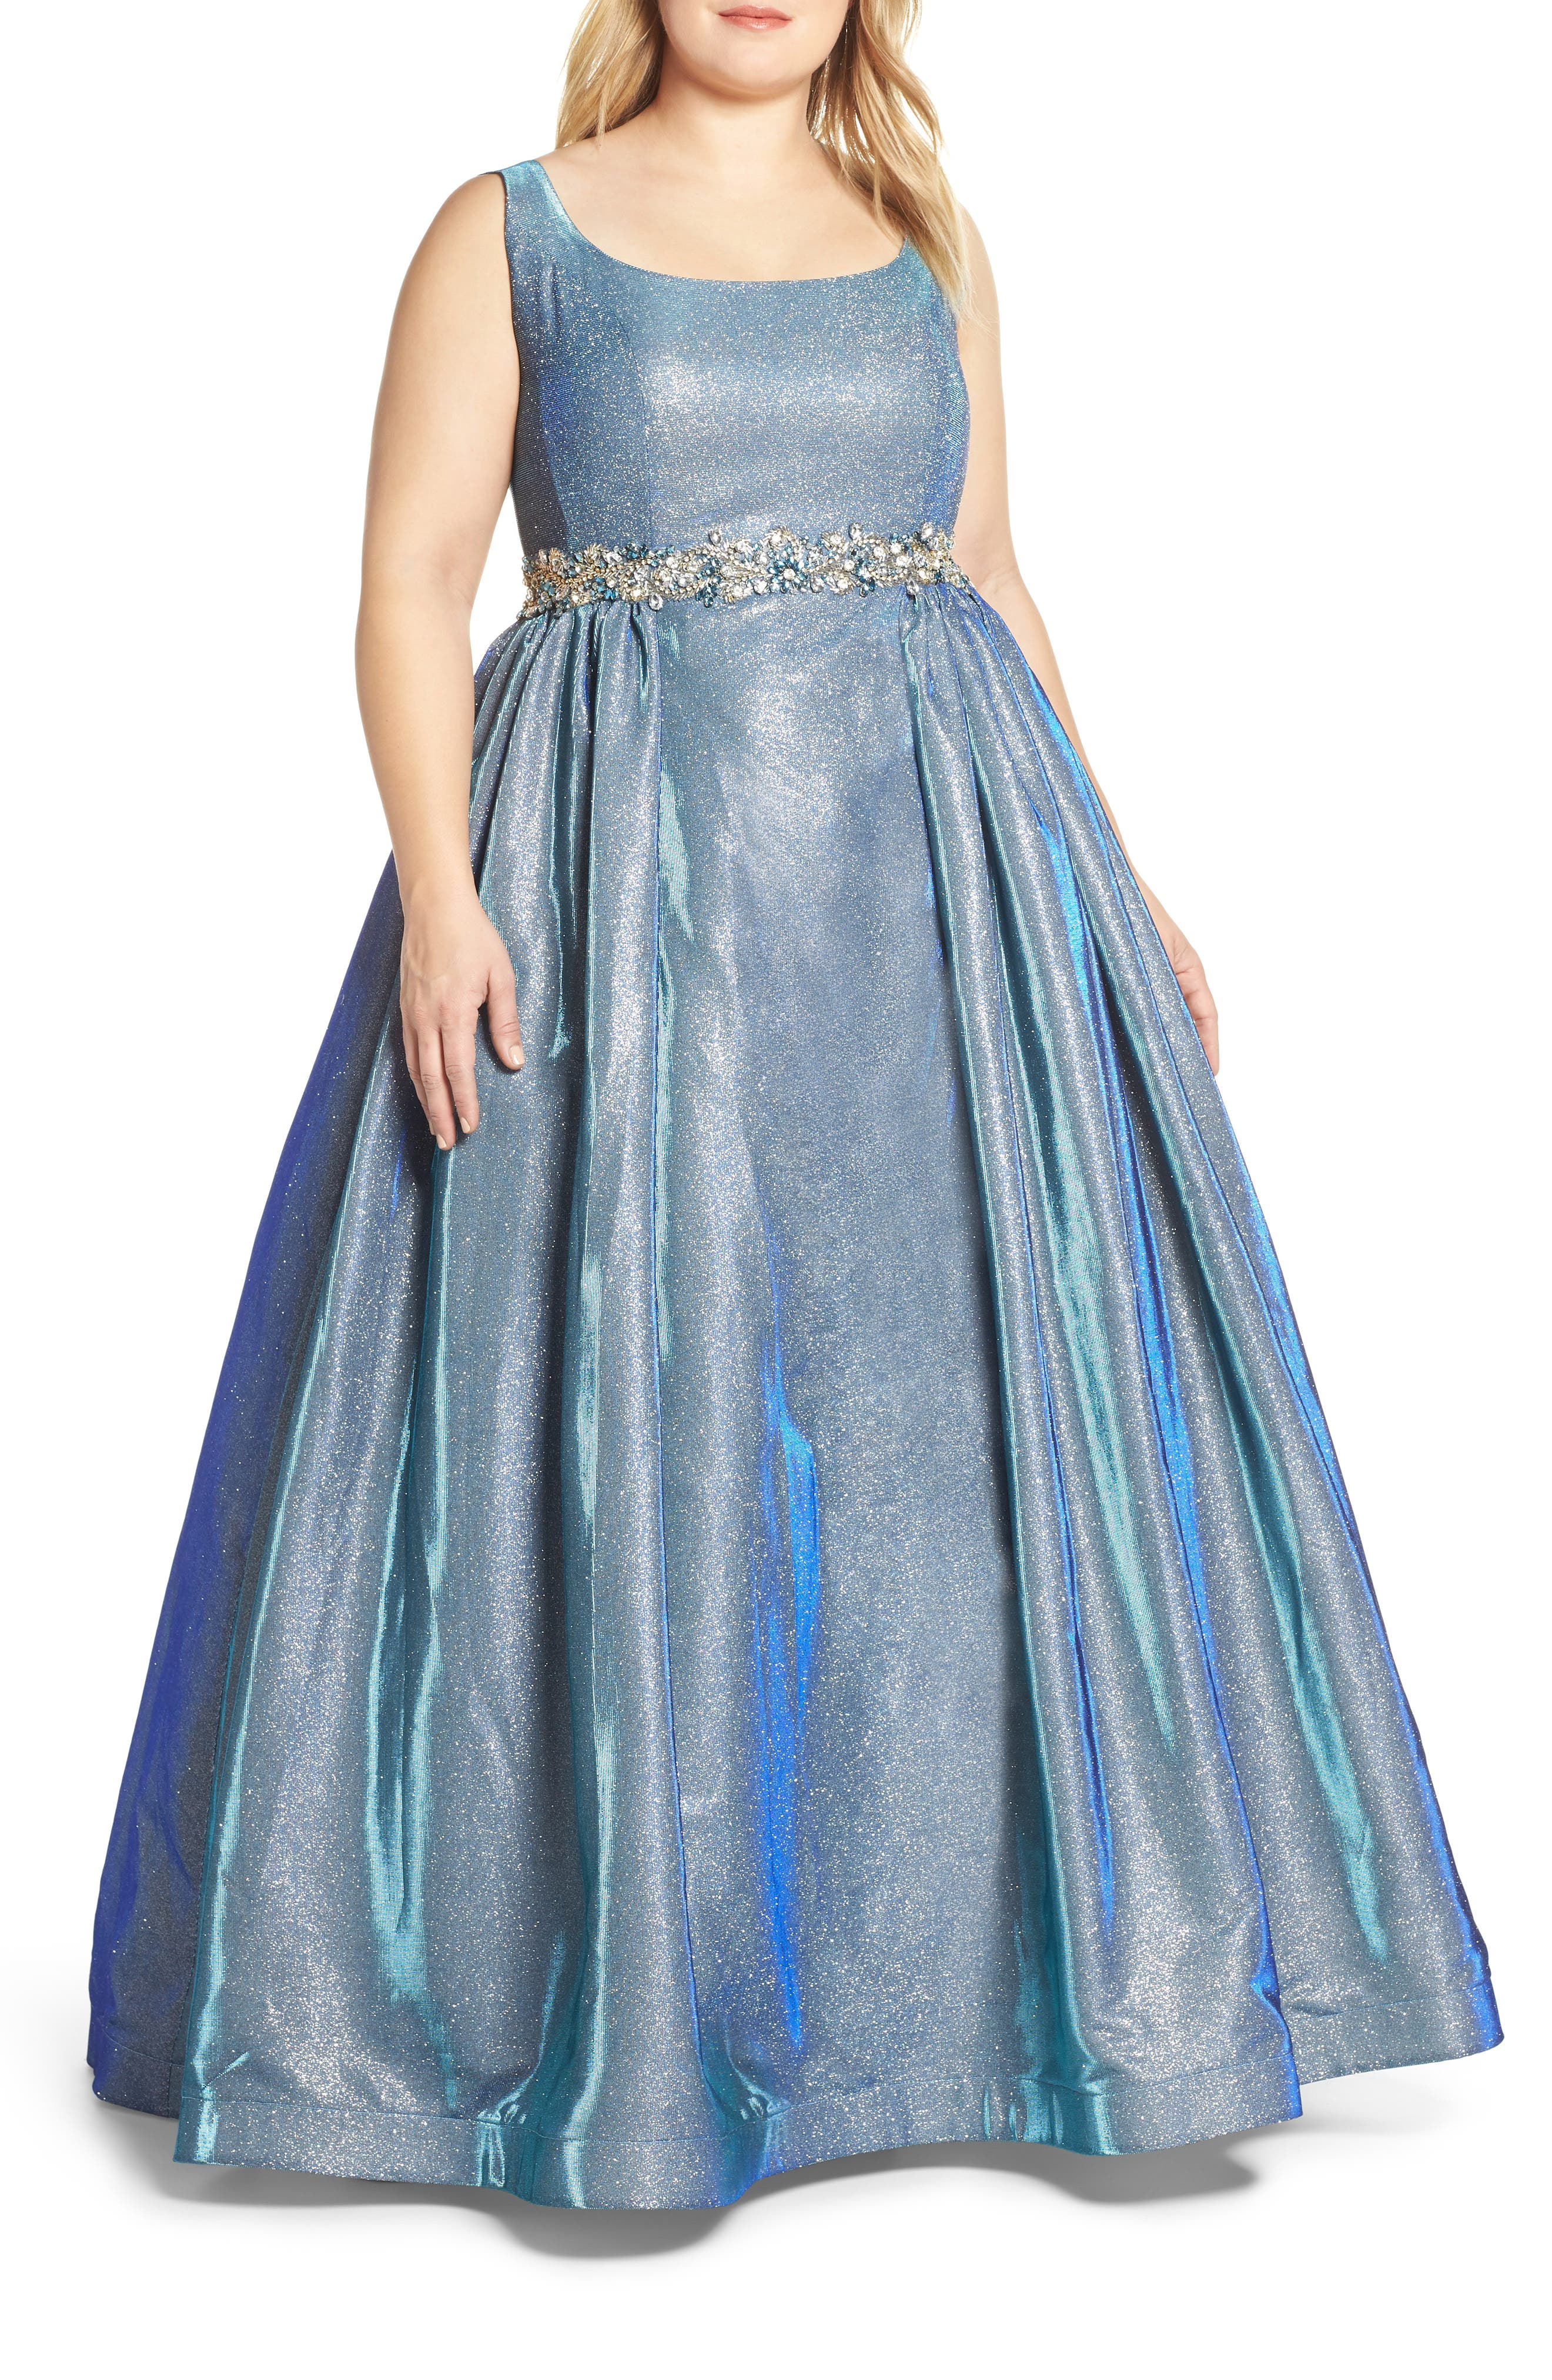 1950s Formal Dresses & Evening Gowns to Buy Plus Size Womens MAC Duggal Jeweled Waist Metallic Evening Dress $558.00 AT vintagedancer.com